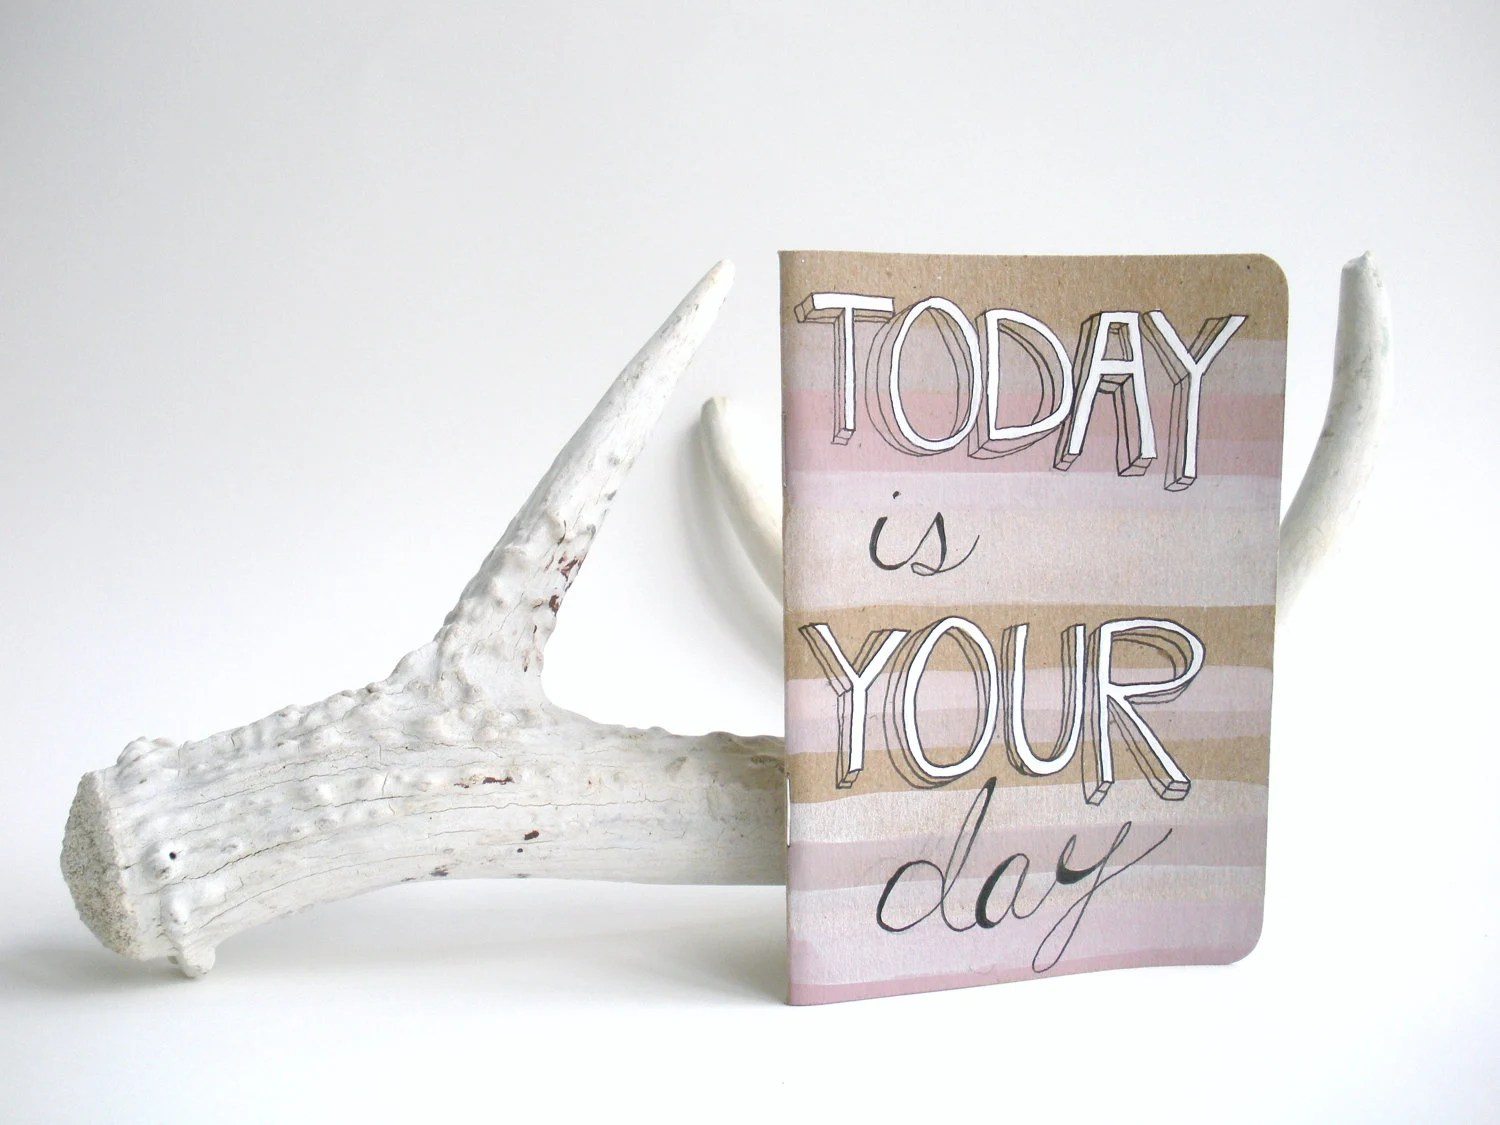 Today is Your Day - Handpainted Custom Made Ombre White and Soft Pink Pocket Cahier - FREE SHIPPING - deermayor